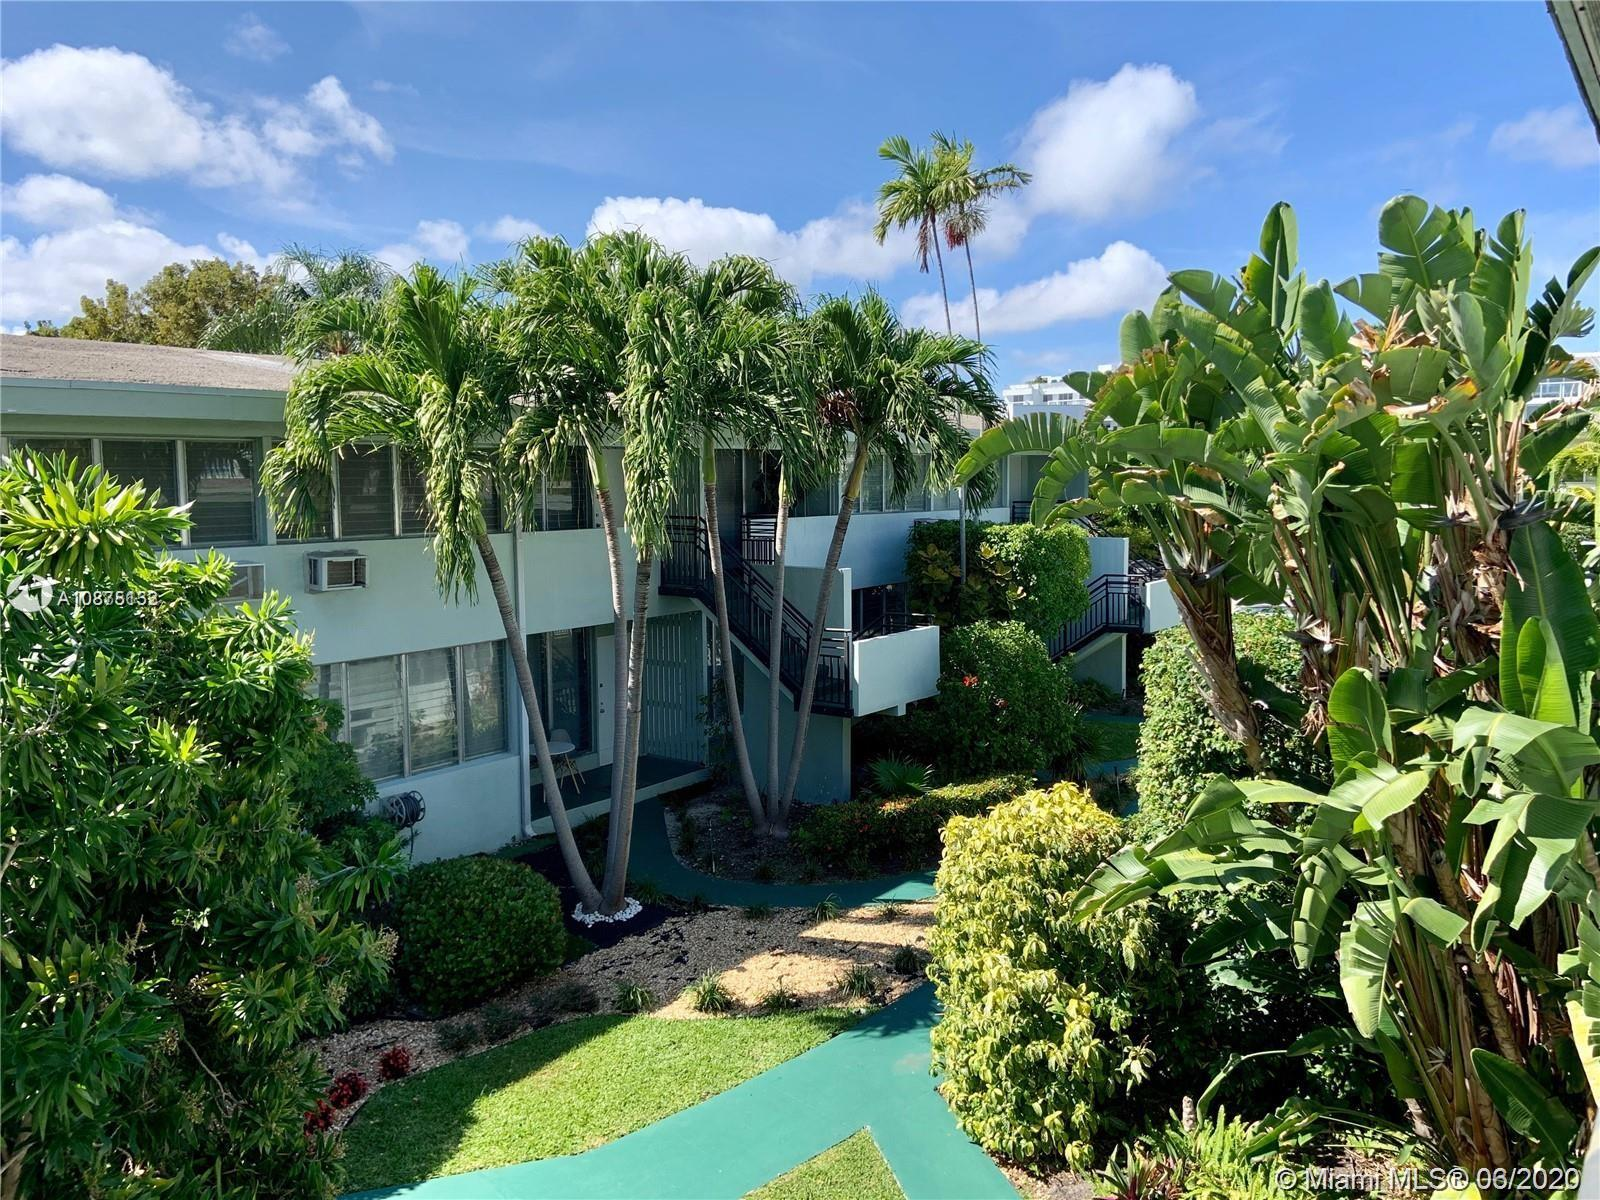 Excellent location in Bay Harbor Islands. One bedroom, one bath. Second floor with beautiful balcony facing the garden, one uncovered parking space, Corner unit with lots of windows and natural light. Maximum two (2) people and no pets -. Walking distance to the ocean, places of worship and supermarkets. Near to Surfside great restaurants. Very safe area. Great investment property.